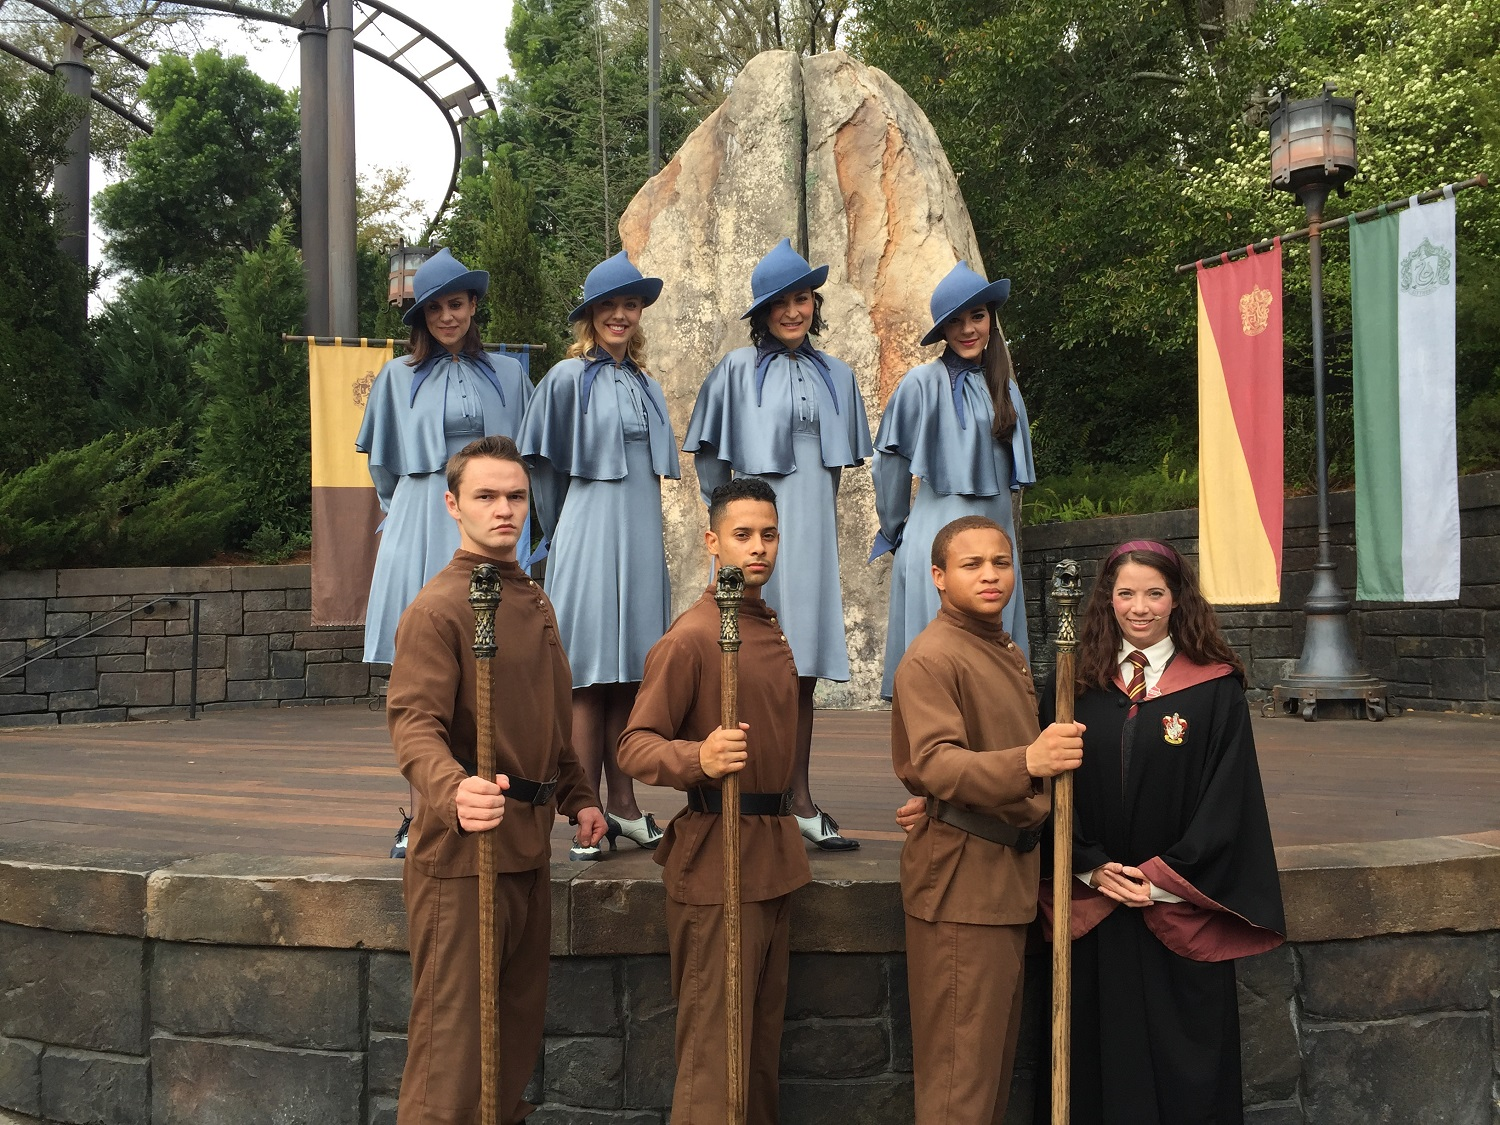 Triwizard Spirit Rally In The Wizarding World Of Harry Potter Uo Fan Guide Silahkan menghubungi @.profshoney menggunakan akun. triwizard spirit rally in the wizarding